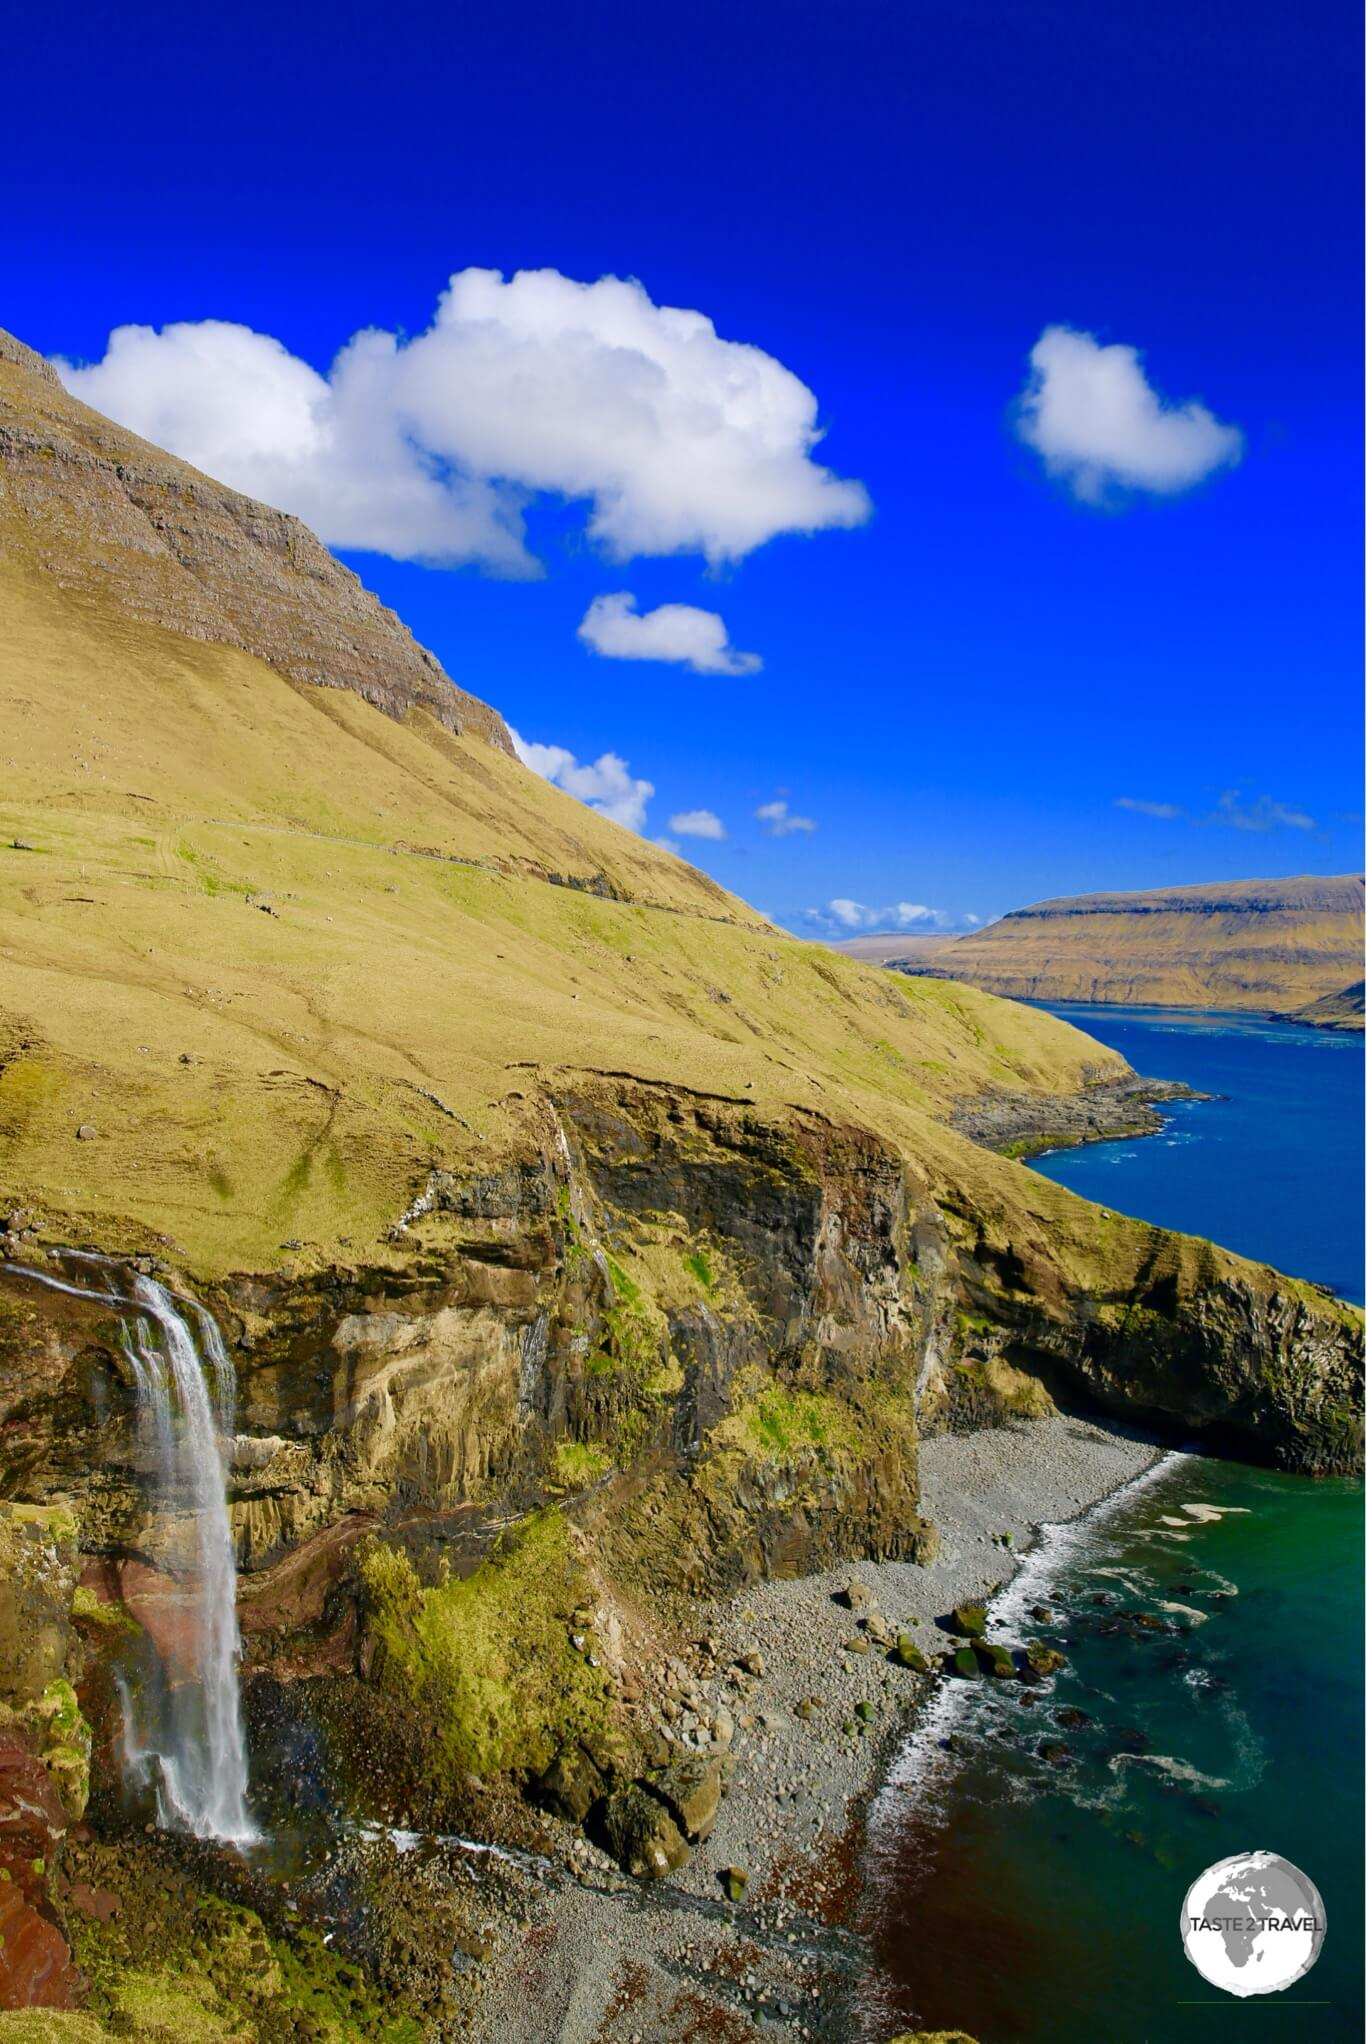 No shortage of spectacular scenery on the Faroe Islands, including this dramatic waterfall plunging onto a remote pebble beach on the island of Vagur.